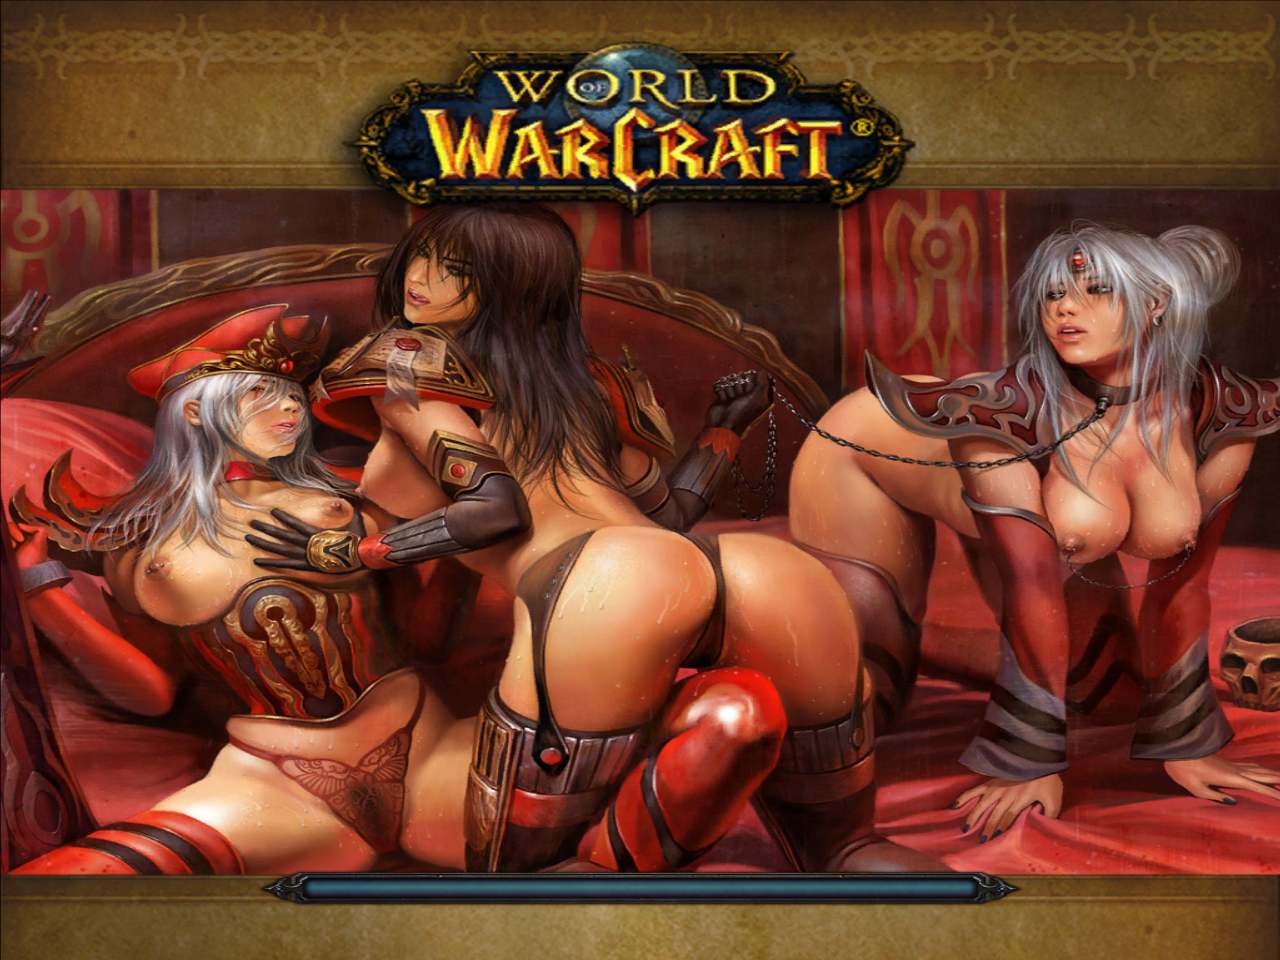 World of warcraft nude clothes mod erotic images